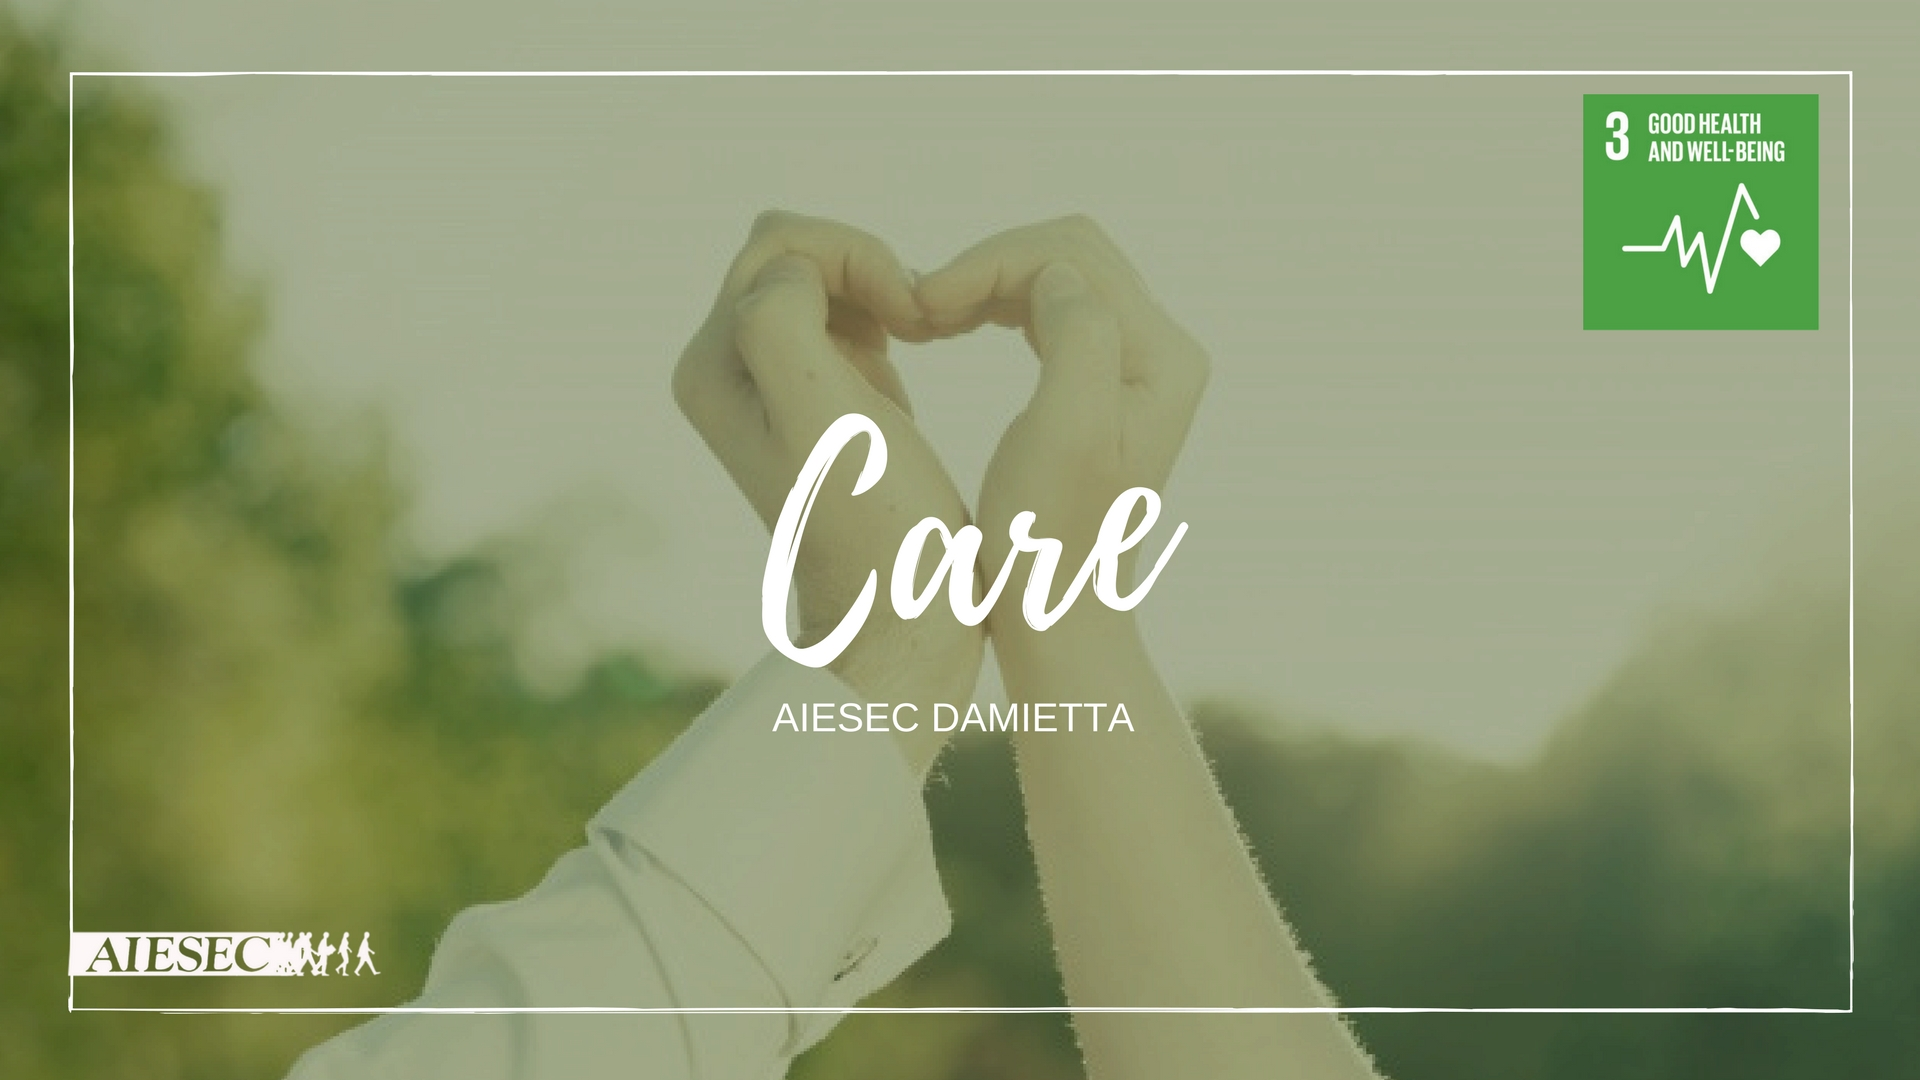 Care For Good Health And Well Being